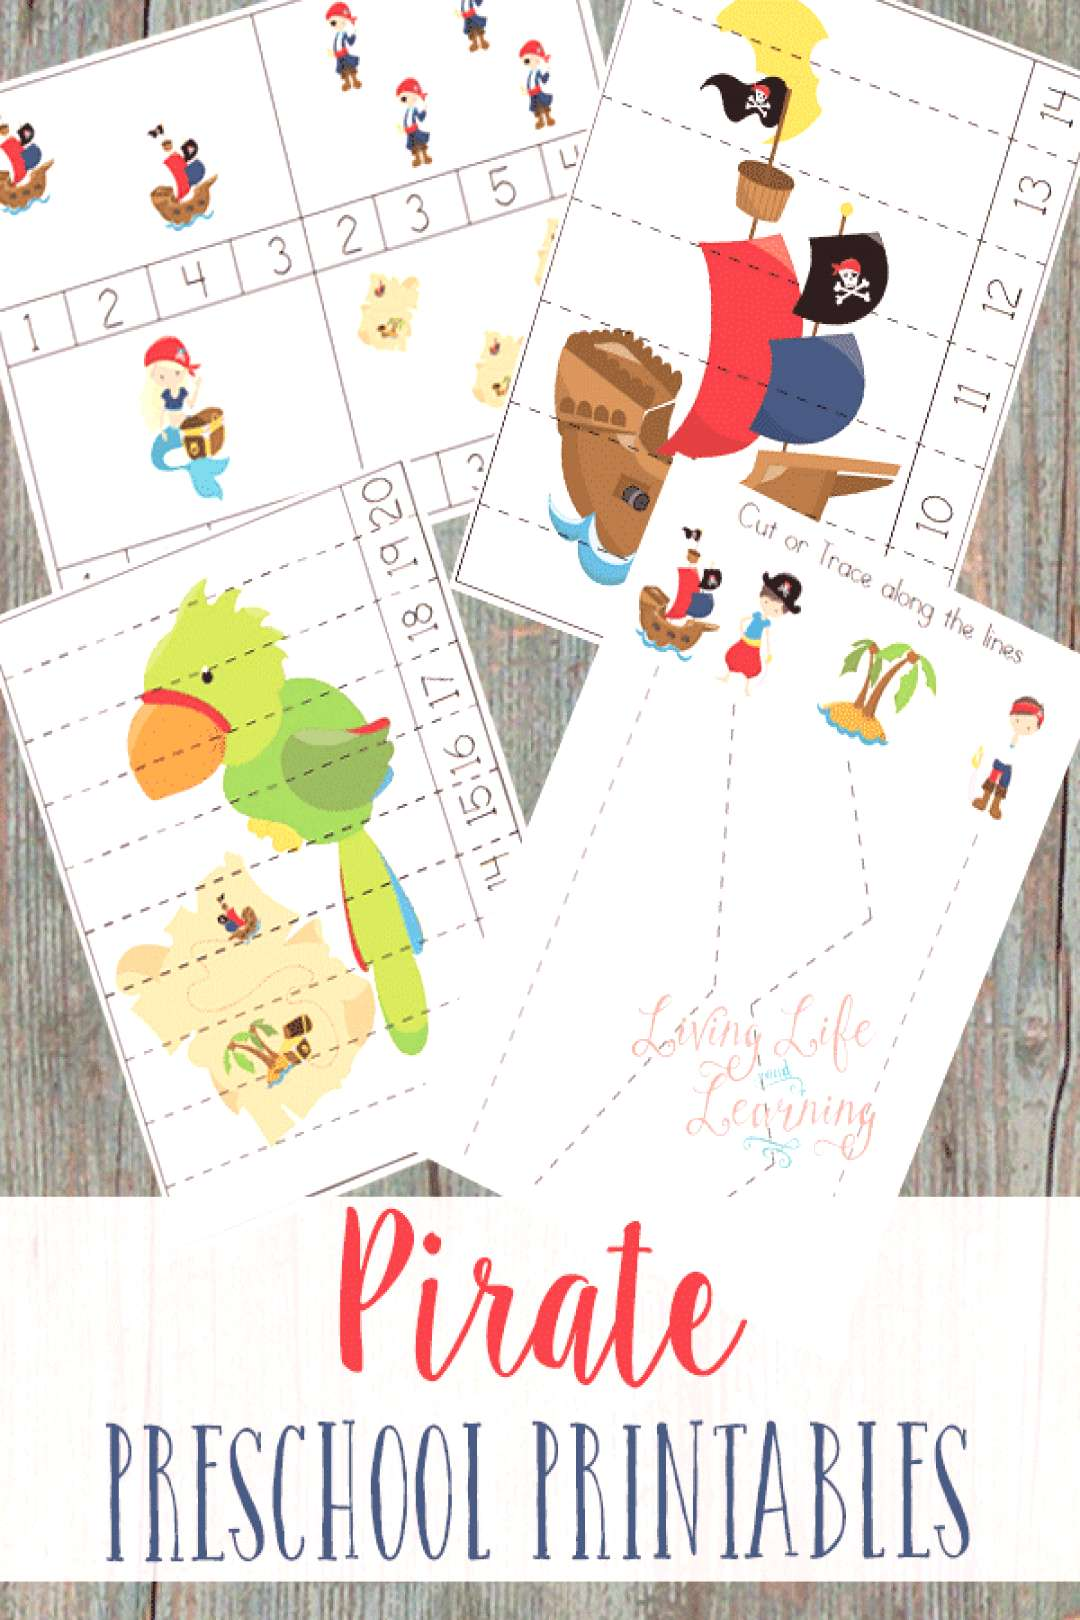 Get into your pirate spirit with these cute pirate preschool printables to practice counting and th